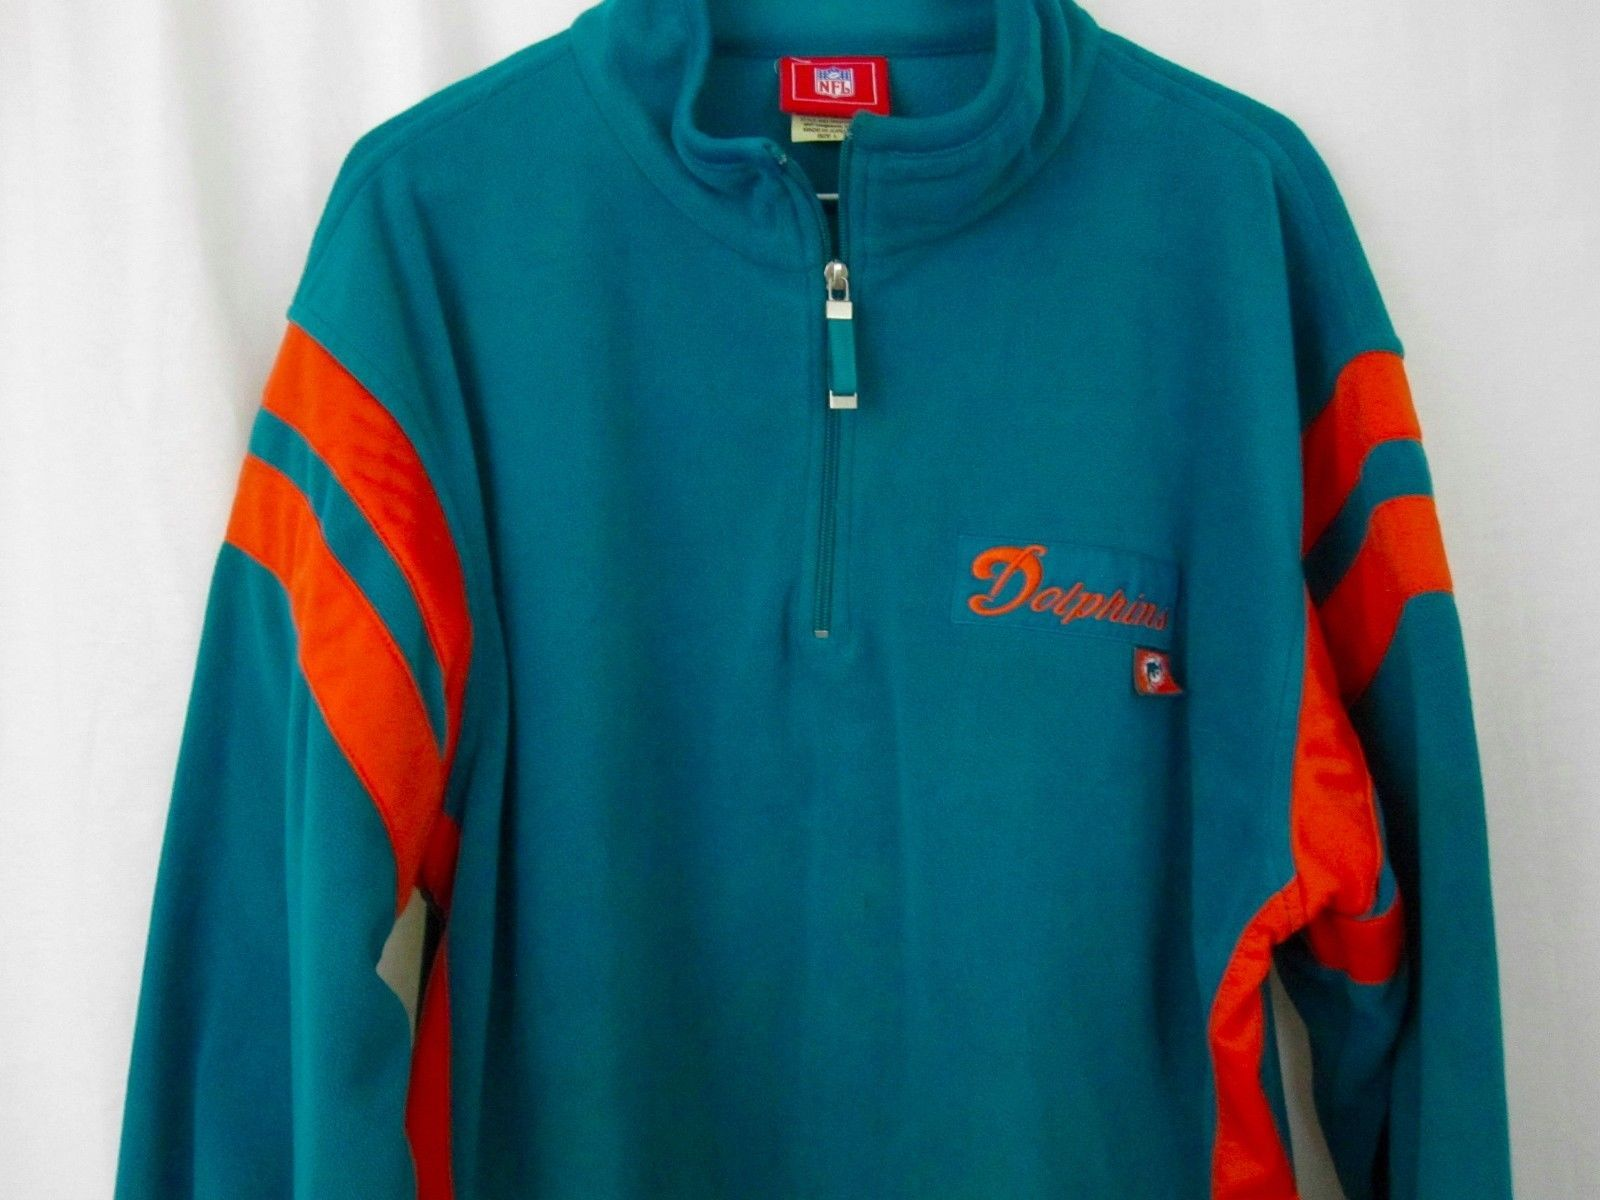 2ae9add41a2 Miami Dolphins Fleece Sweater Large NFL Half Zip Green Orange Mens L  Sweatshirt